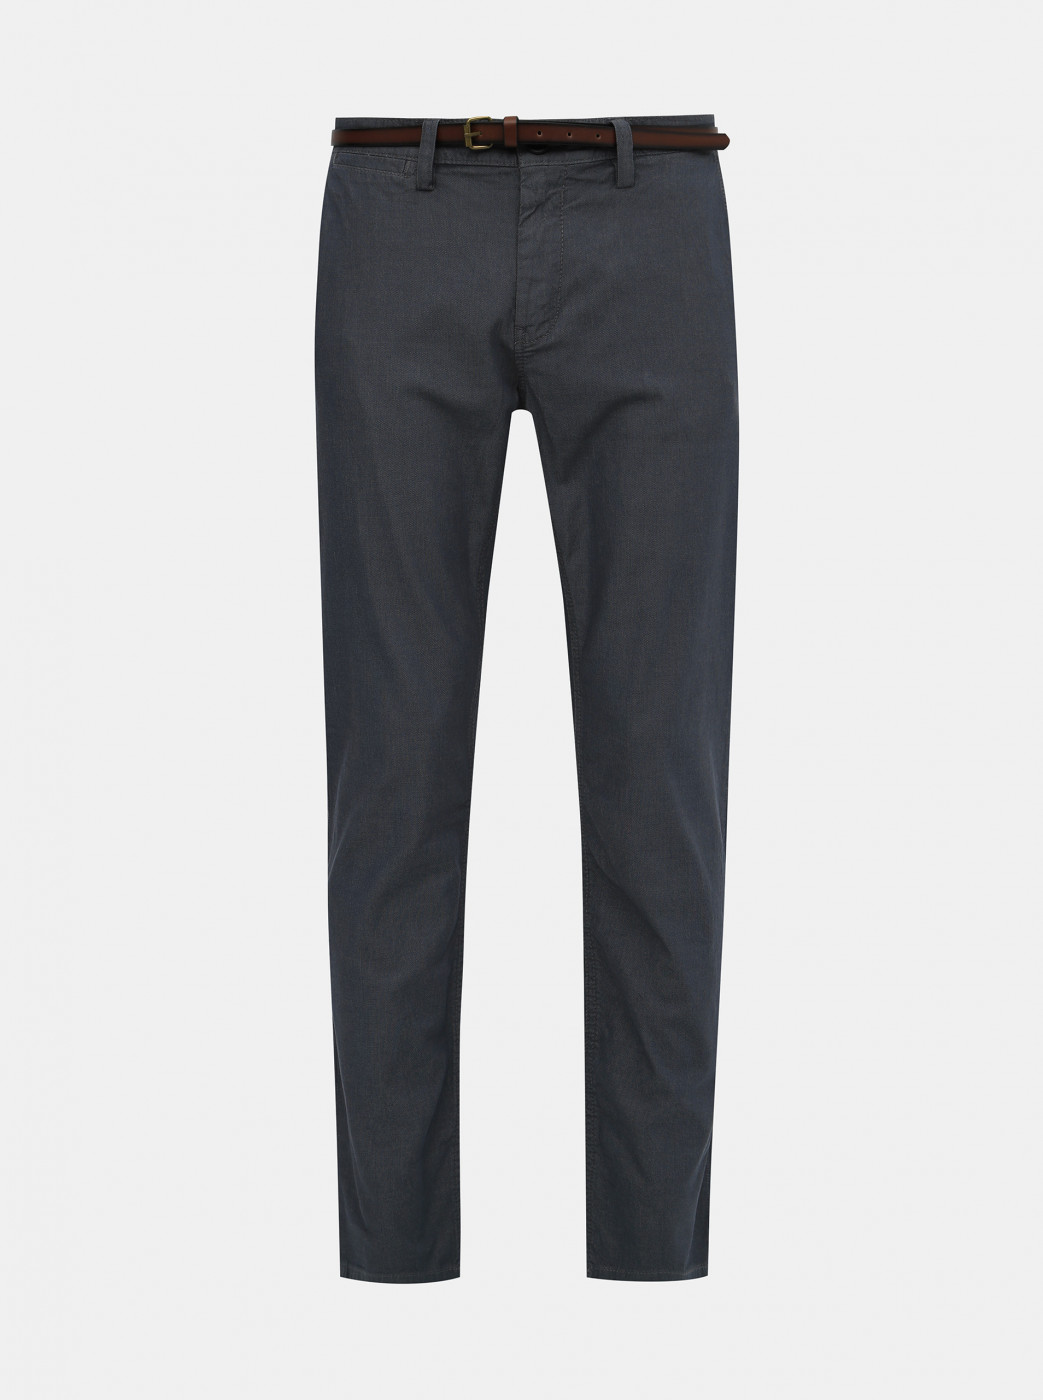 Grey Men's Chino Pants By Tom Tailor